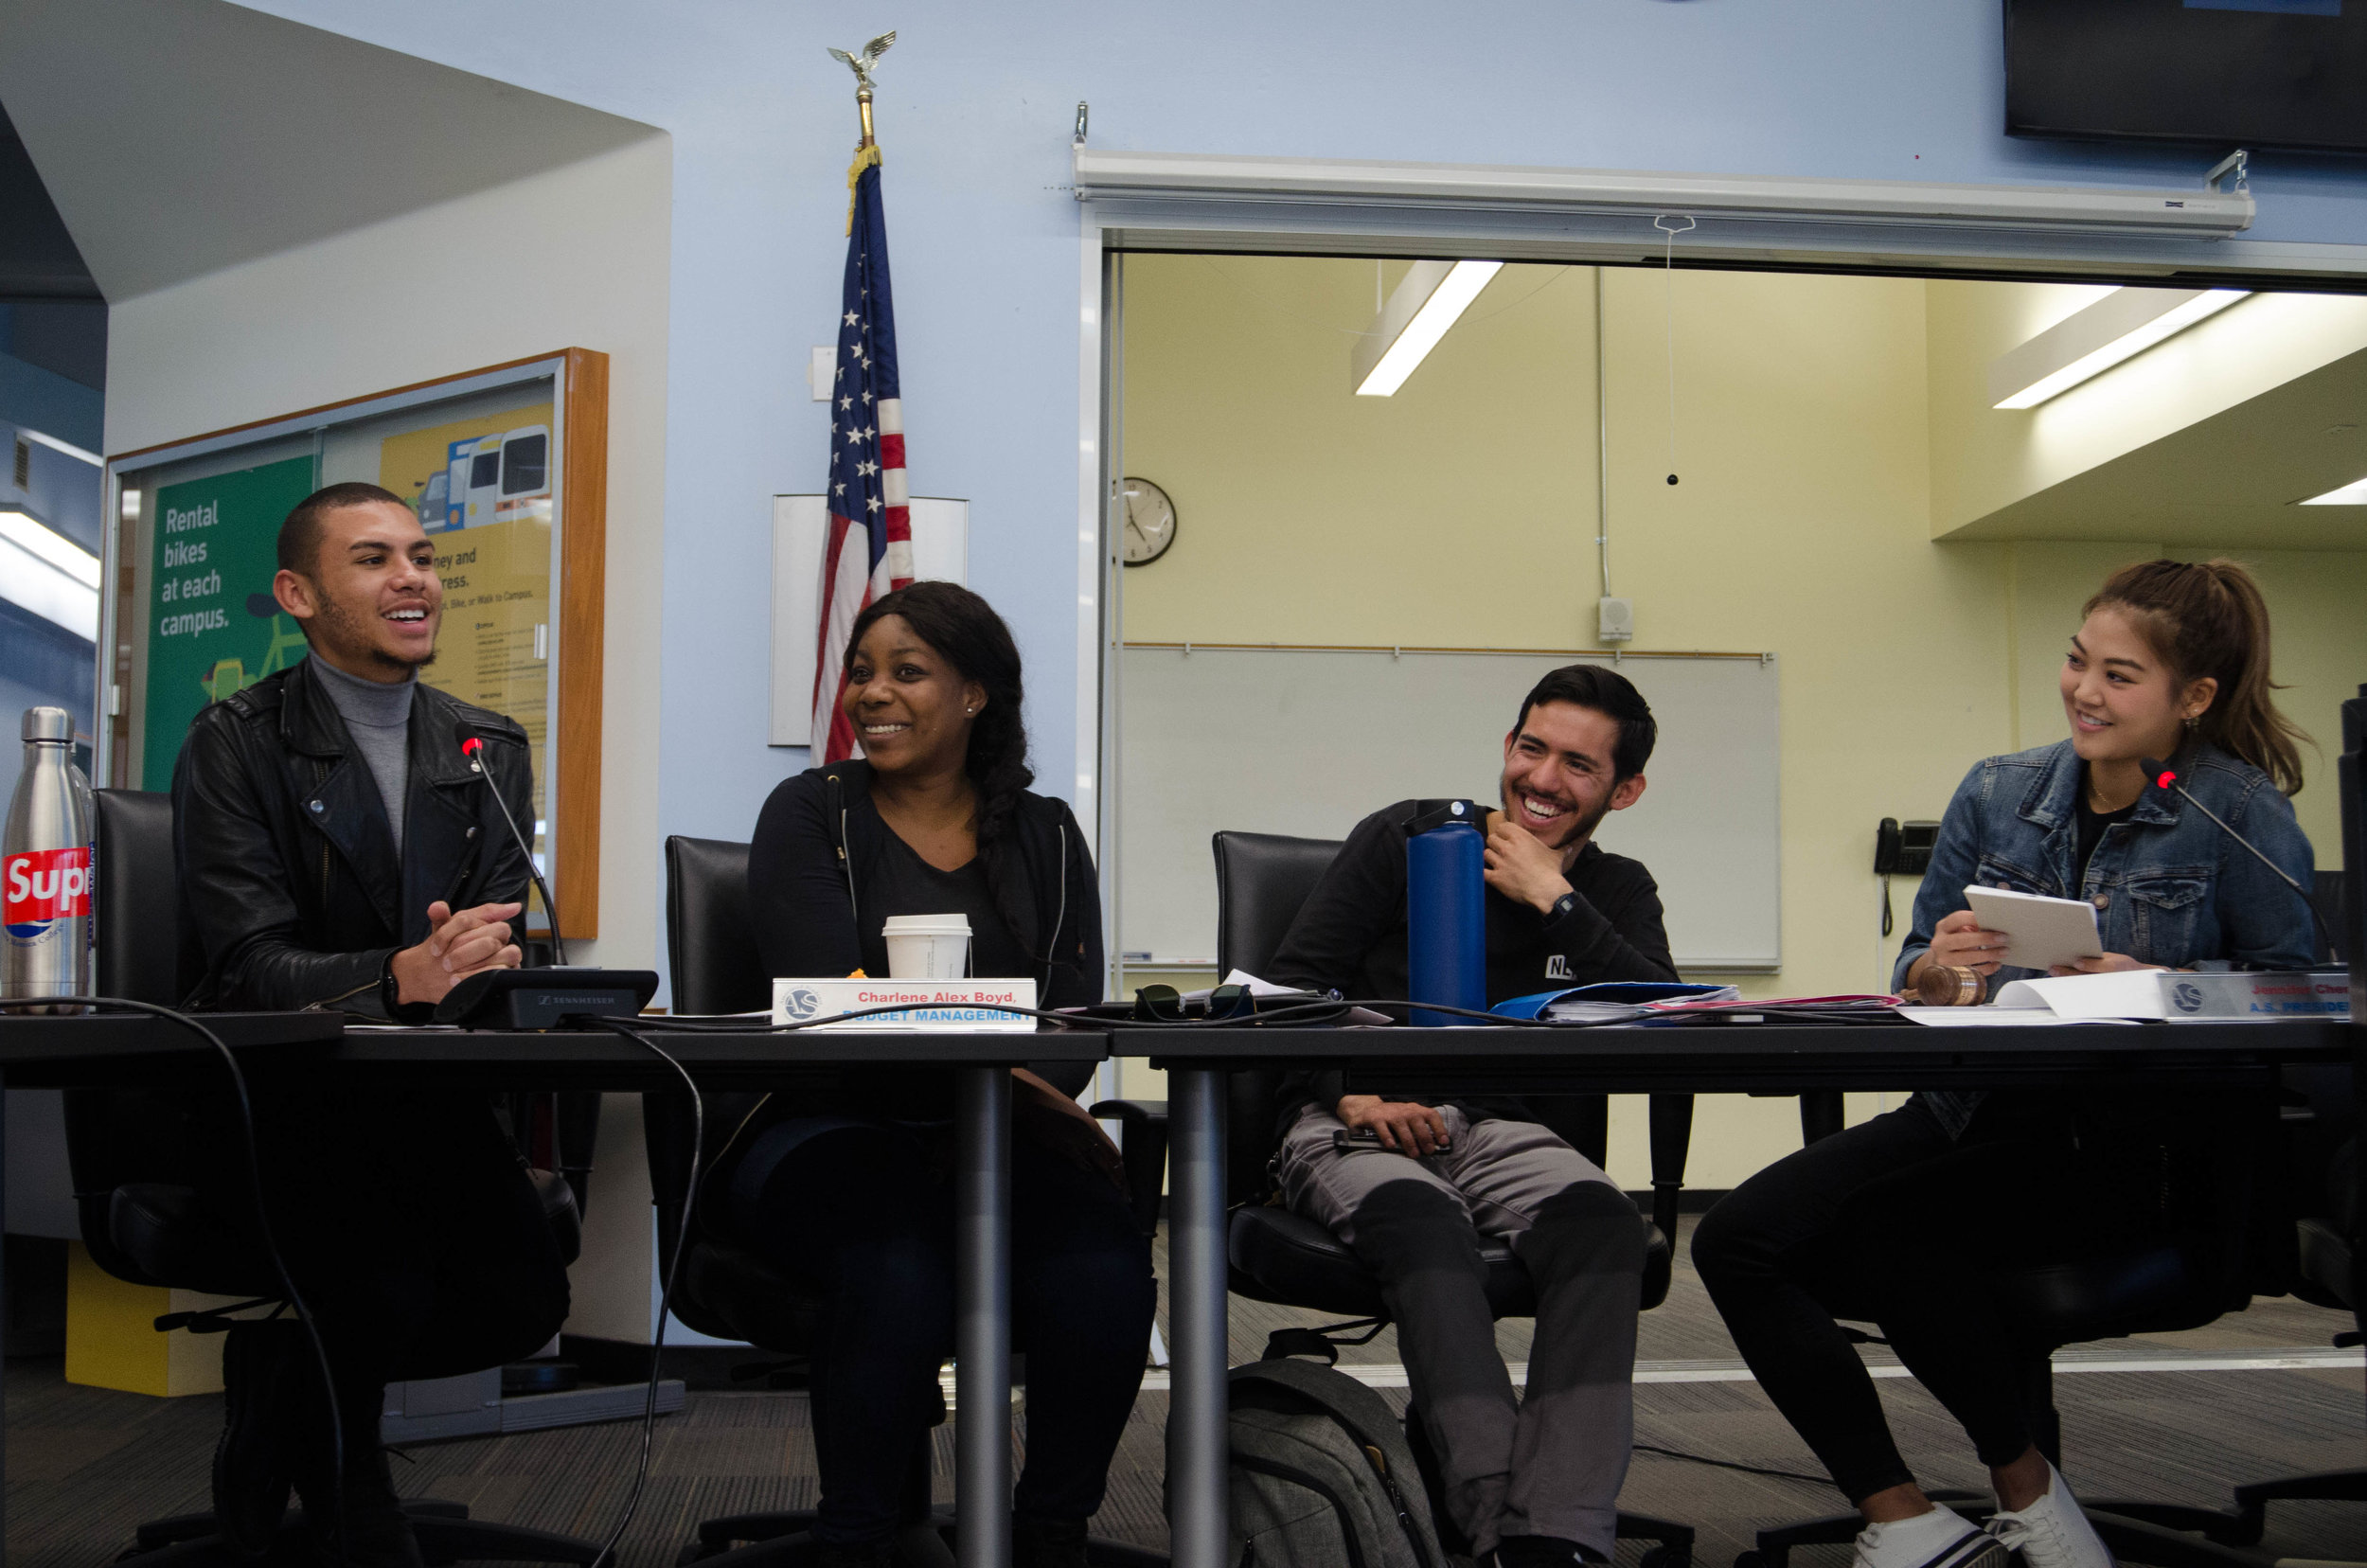 Associated Students President Jennifer Chen (far right) and Student Trustee Chase Matthews (far left) roleplay an interaction between a Congressman and an advocate, to the amusement of Director of Budget Management Charlene Alex Boyd (center left) and Vice President George Sandoval (center right) In the Associated Students' Center at Santa Monica College in Santa Monica, California. (Reed Curtis/Corsair Photo)Monica College in Santa Monica, California, Associated Students. (L-R) President Jennifer Chen, Faculty Advisor Dr. Nancy Grass, Director of Student Assistance Ana Laura Paiva, Director of Publicity Stephanie Hernandez, Director of Activities Saori Gurung, Director of Student Advovacy Santiago Guerrero, Director of Budget Managment Charlene Alex Boyd, A.S. Vice President Geoge Sandoval, Student Trustee Chase Matthews, and Director of Student Outreach Max Gong. (Reed Curtis/Corsair Photo)